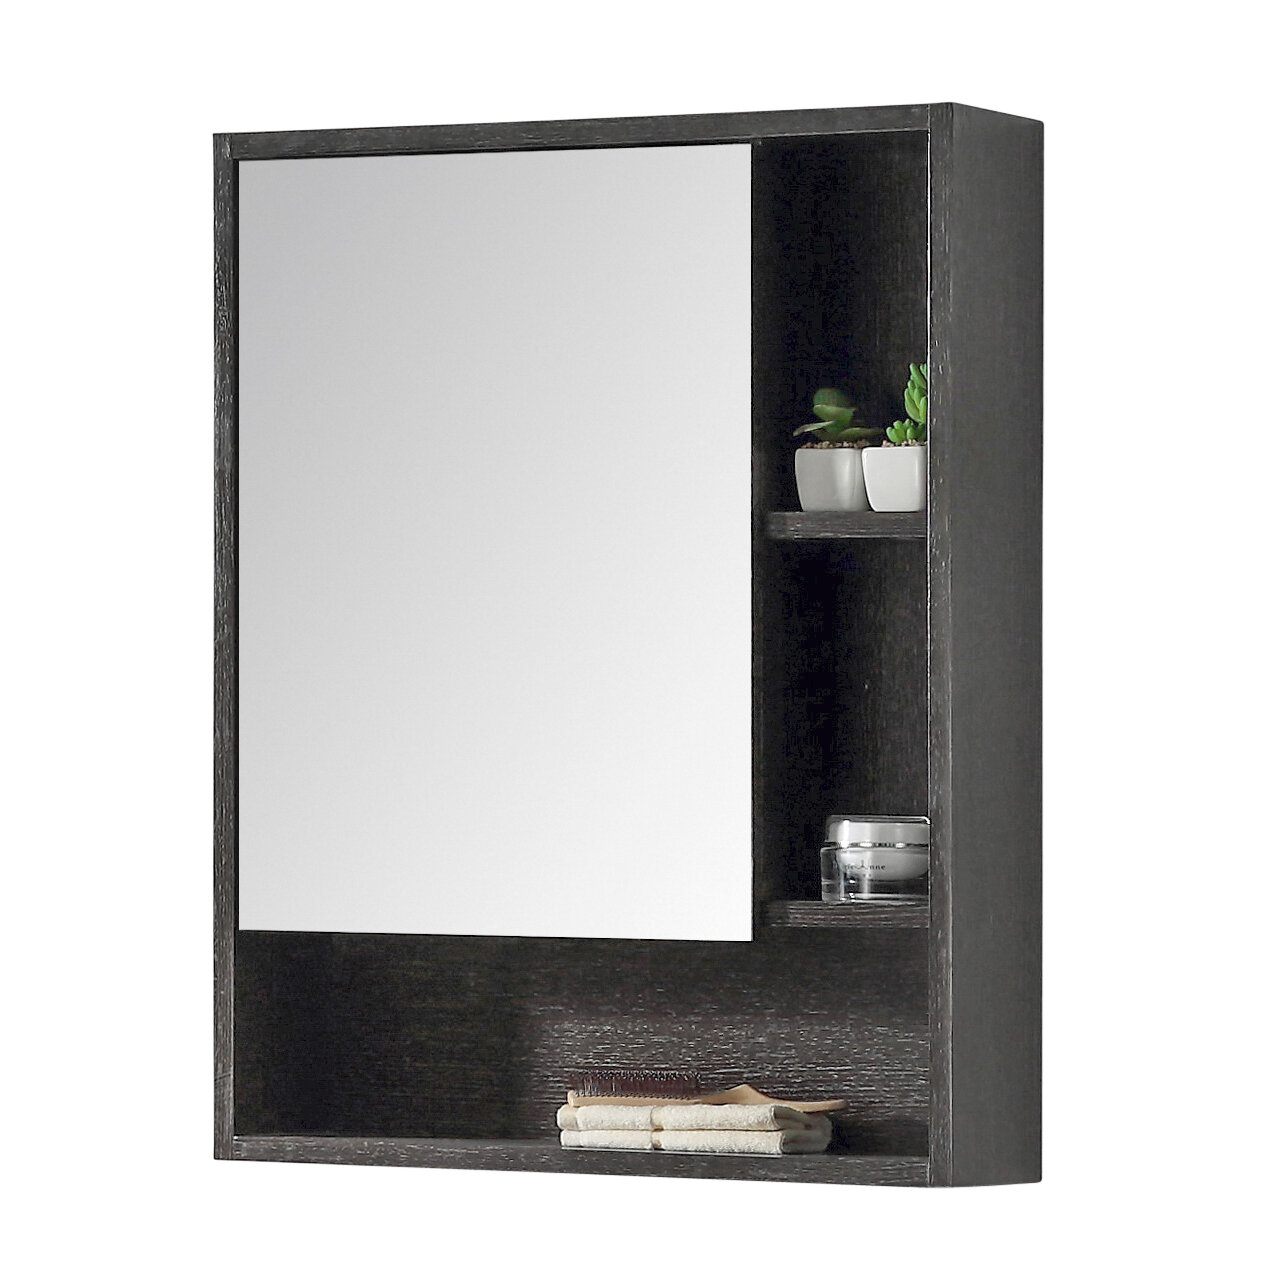 Black Medicine Cabinets Free Shipping Over 35 Wayfair